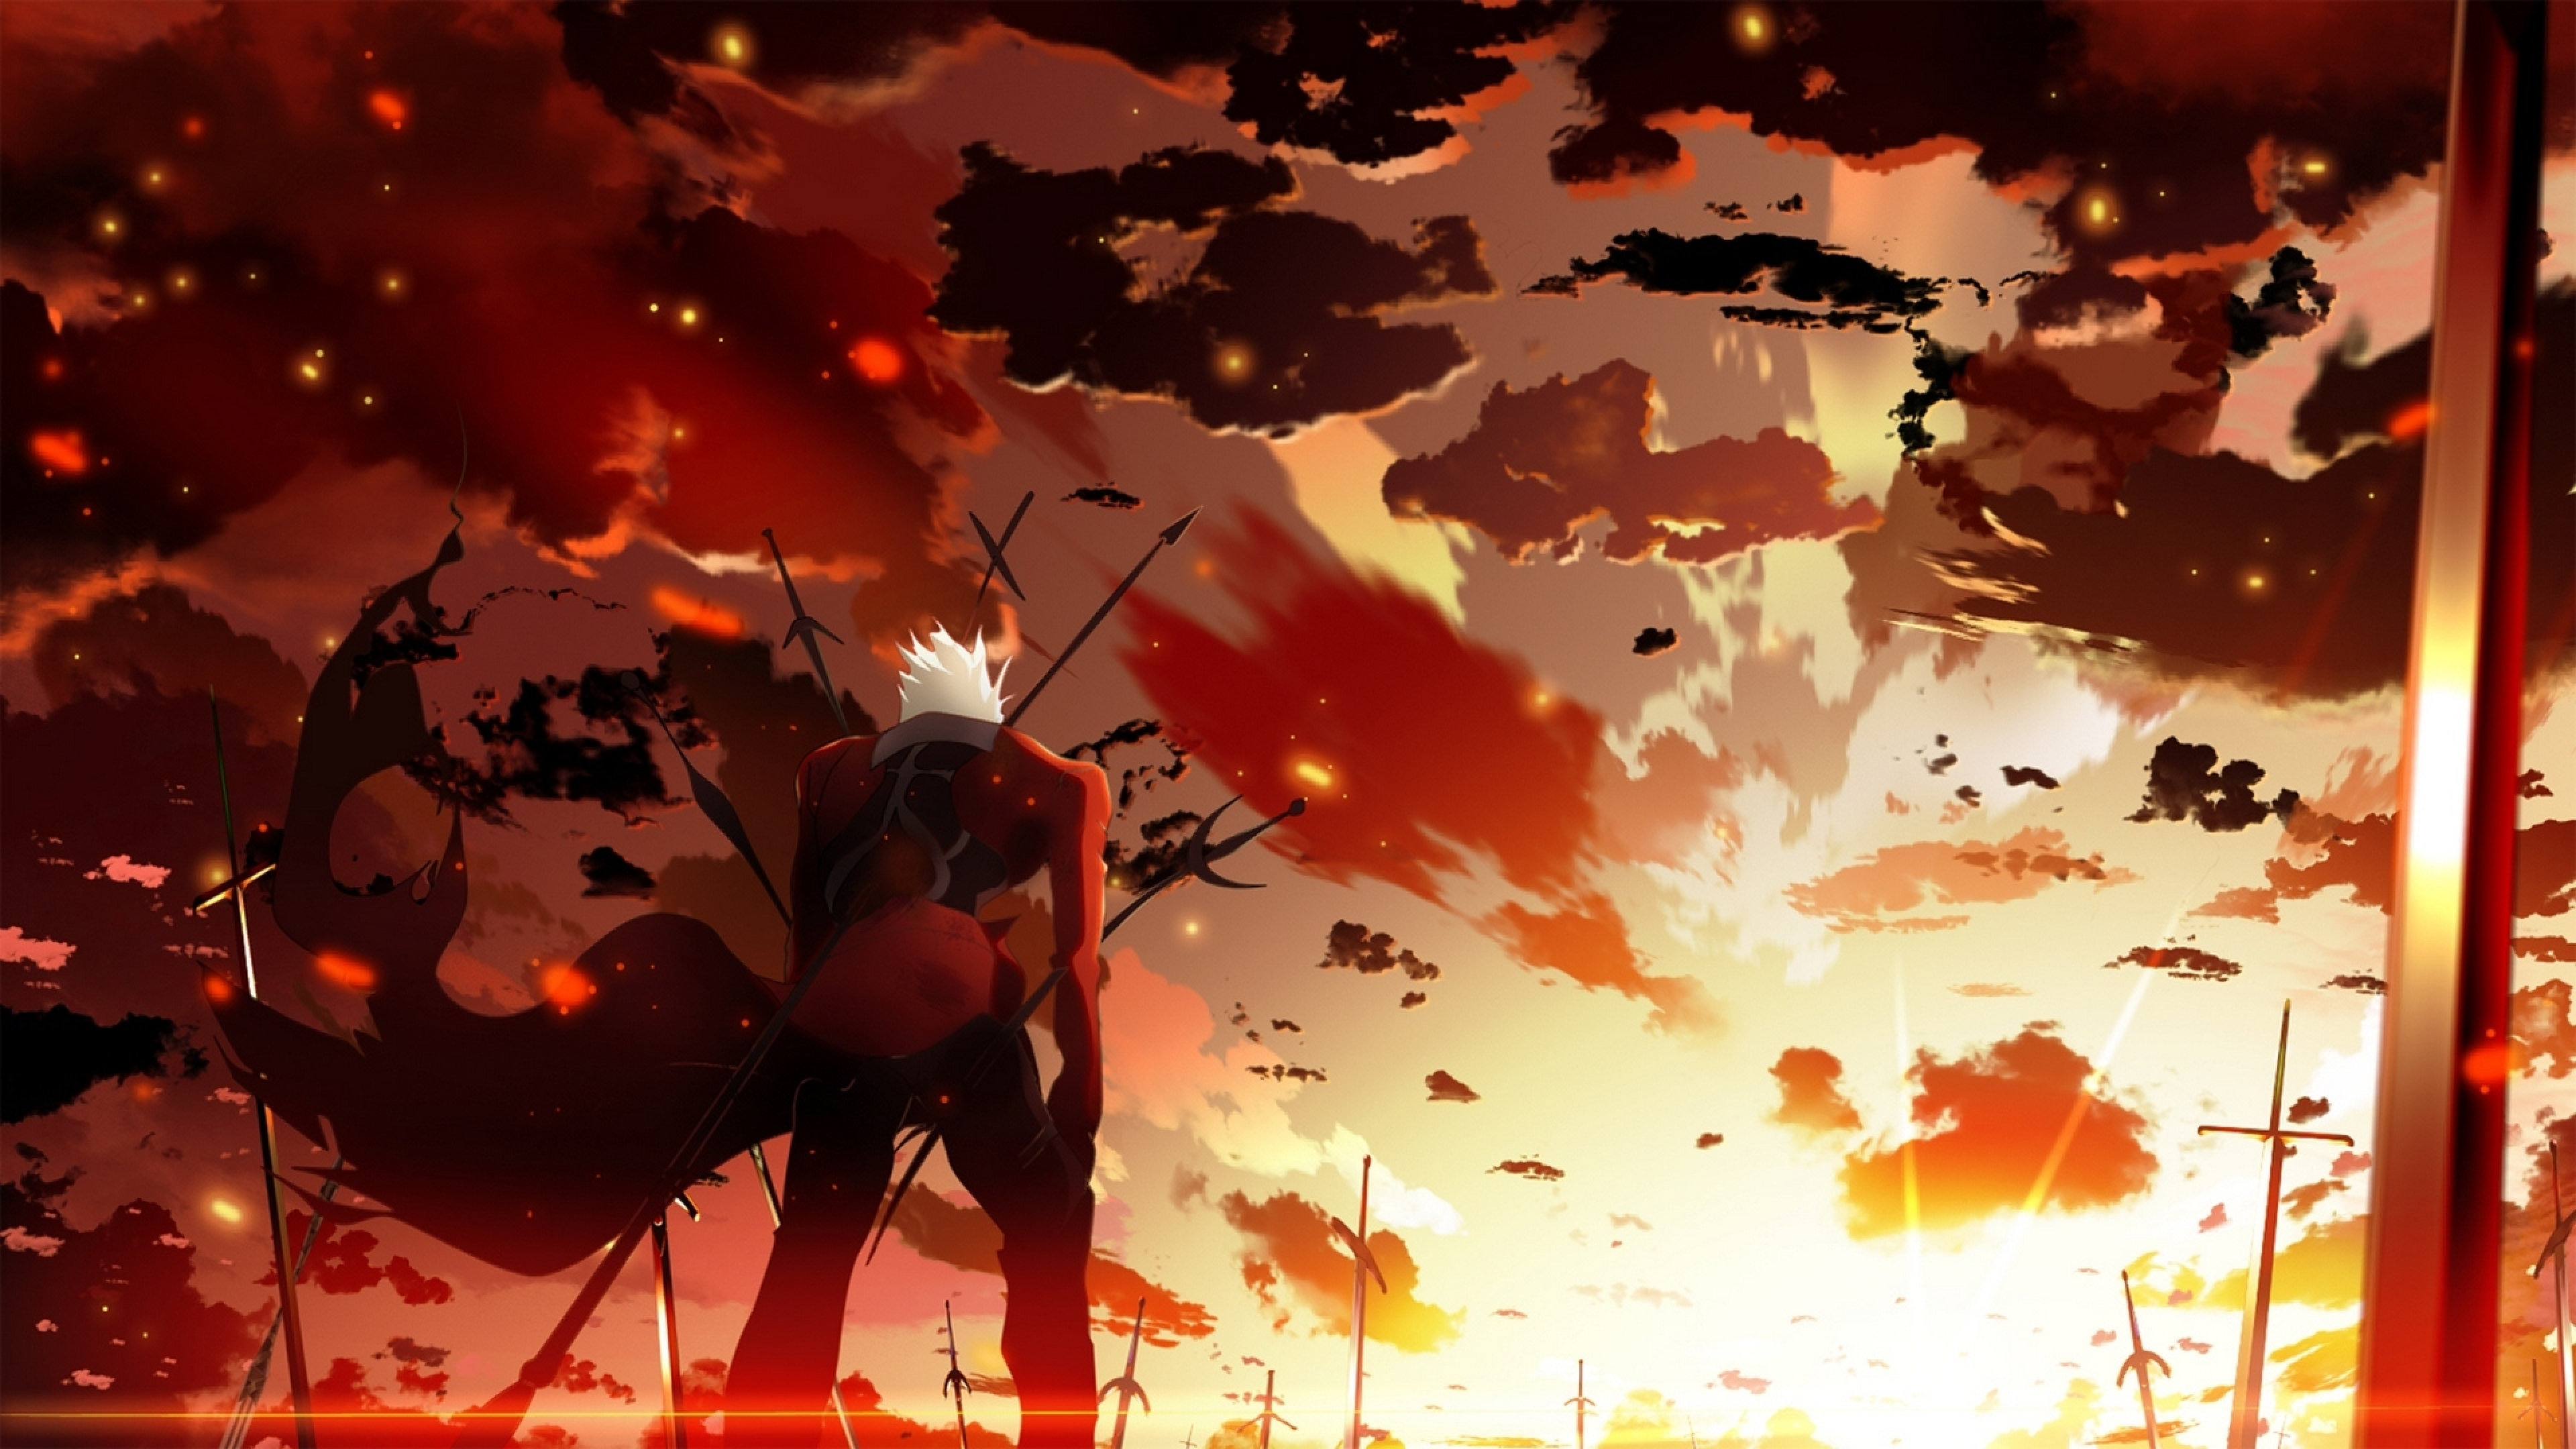 3840x2160 Fate Stay Night Archer Sunset 4k Wallpaper Hd Anime